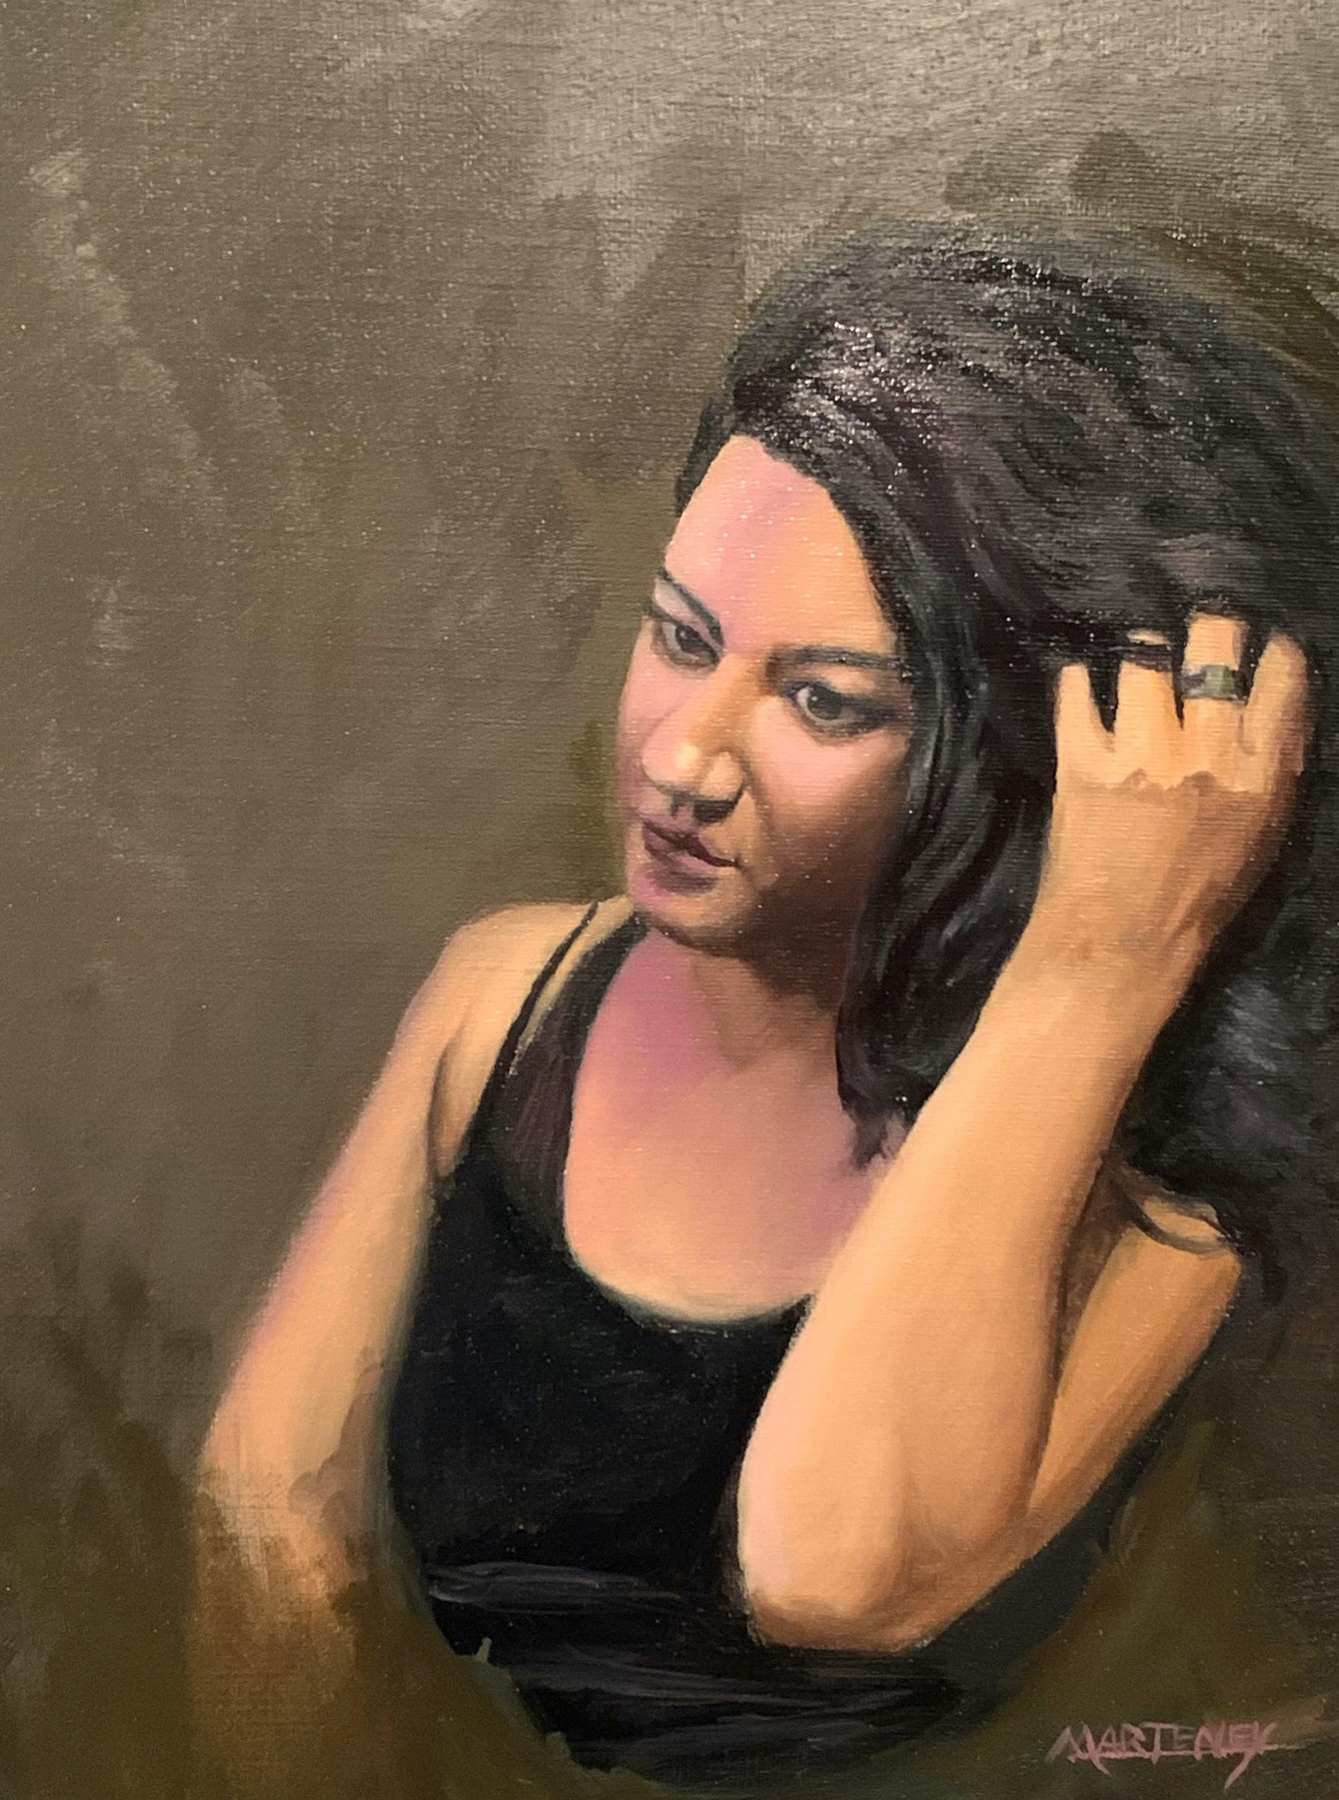 "</br><p align=""left""><strong><em>Female Portrait in Oil, February 2020</em></strong></br> 14 x 11""</br> Oil paint on canvas</br> $350</br> <strong><a href=""https://checkout.square.site/buy/G6ADPGIIMUTQJUZHYDEMM3OH"">PURCHASE</a></strong></p>"